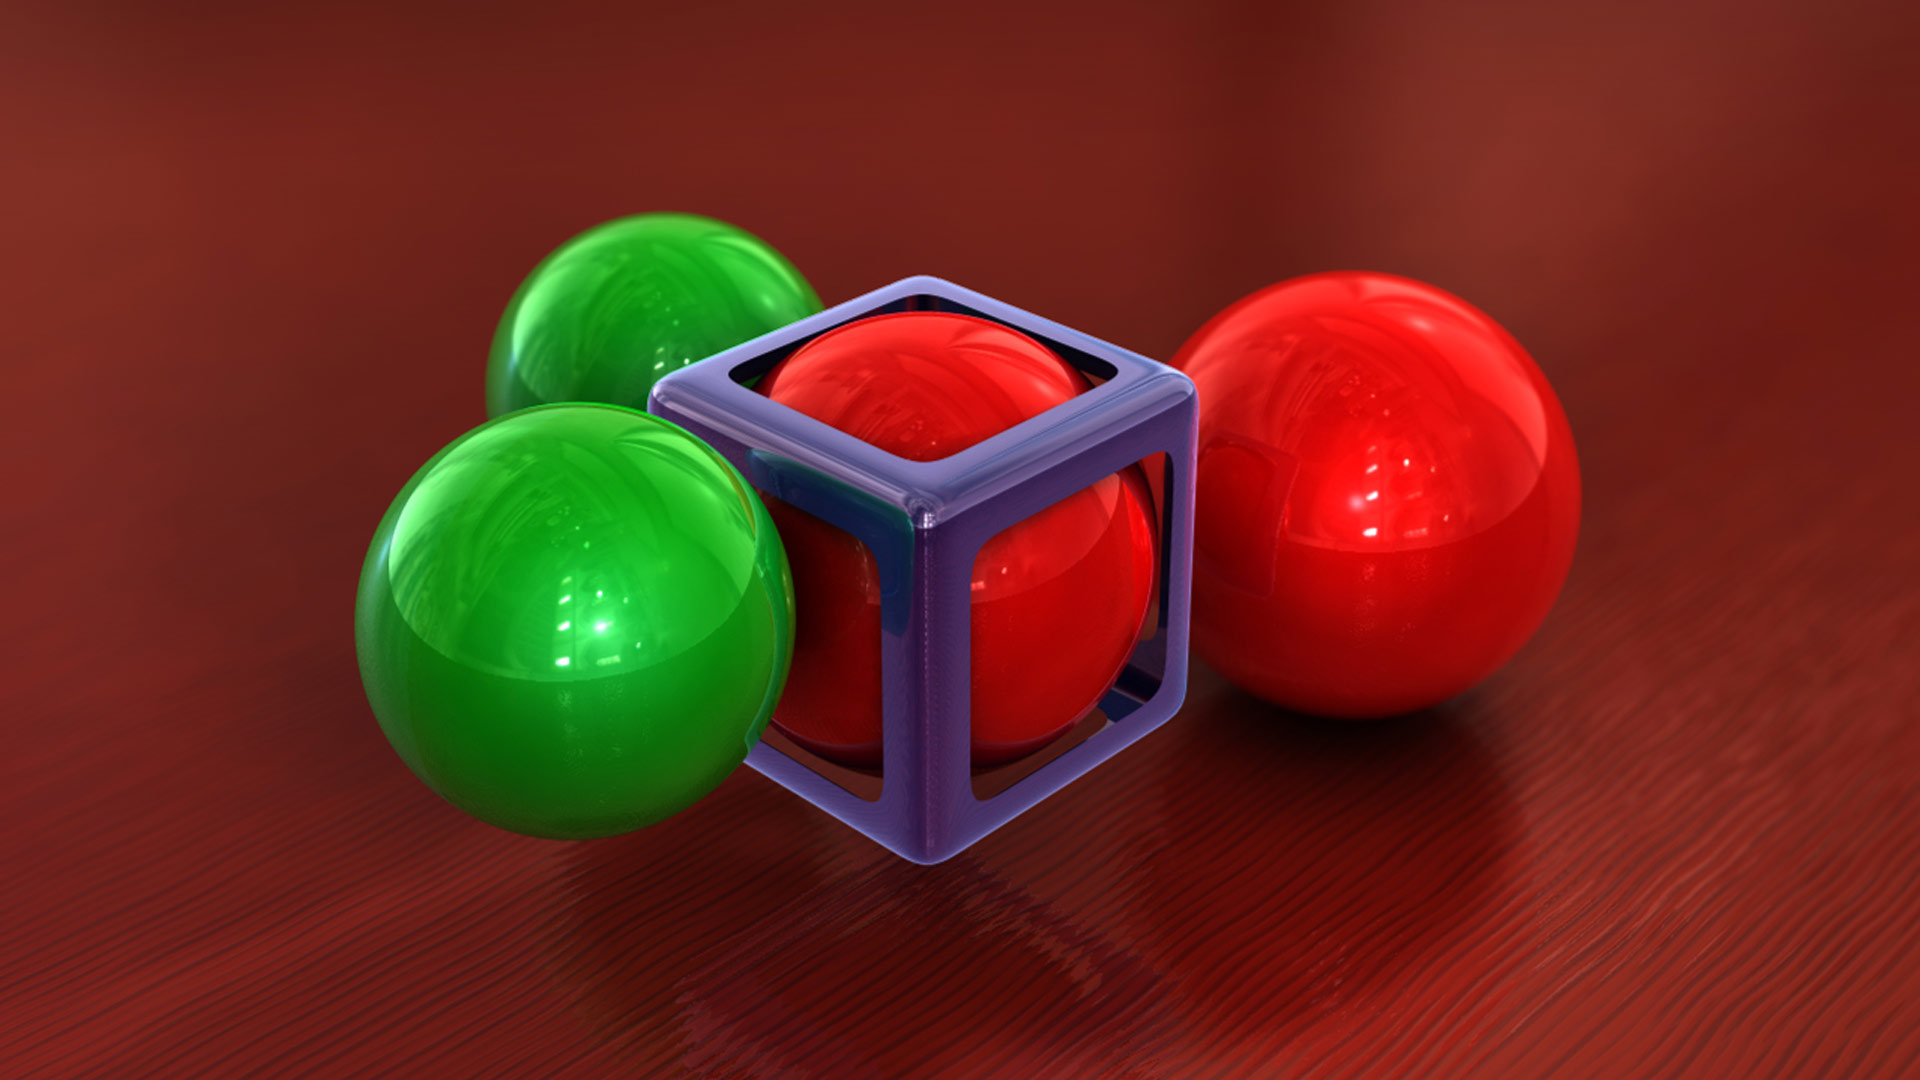 Cube Ball Desktop hd Wallpaper High Quality WallpapersWallpaper 1920x1080